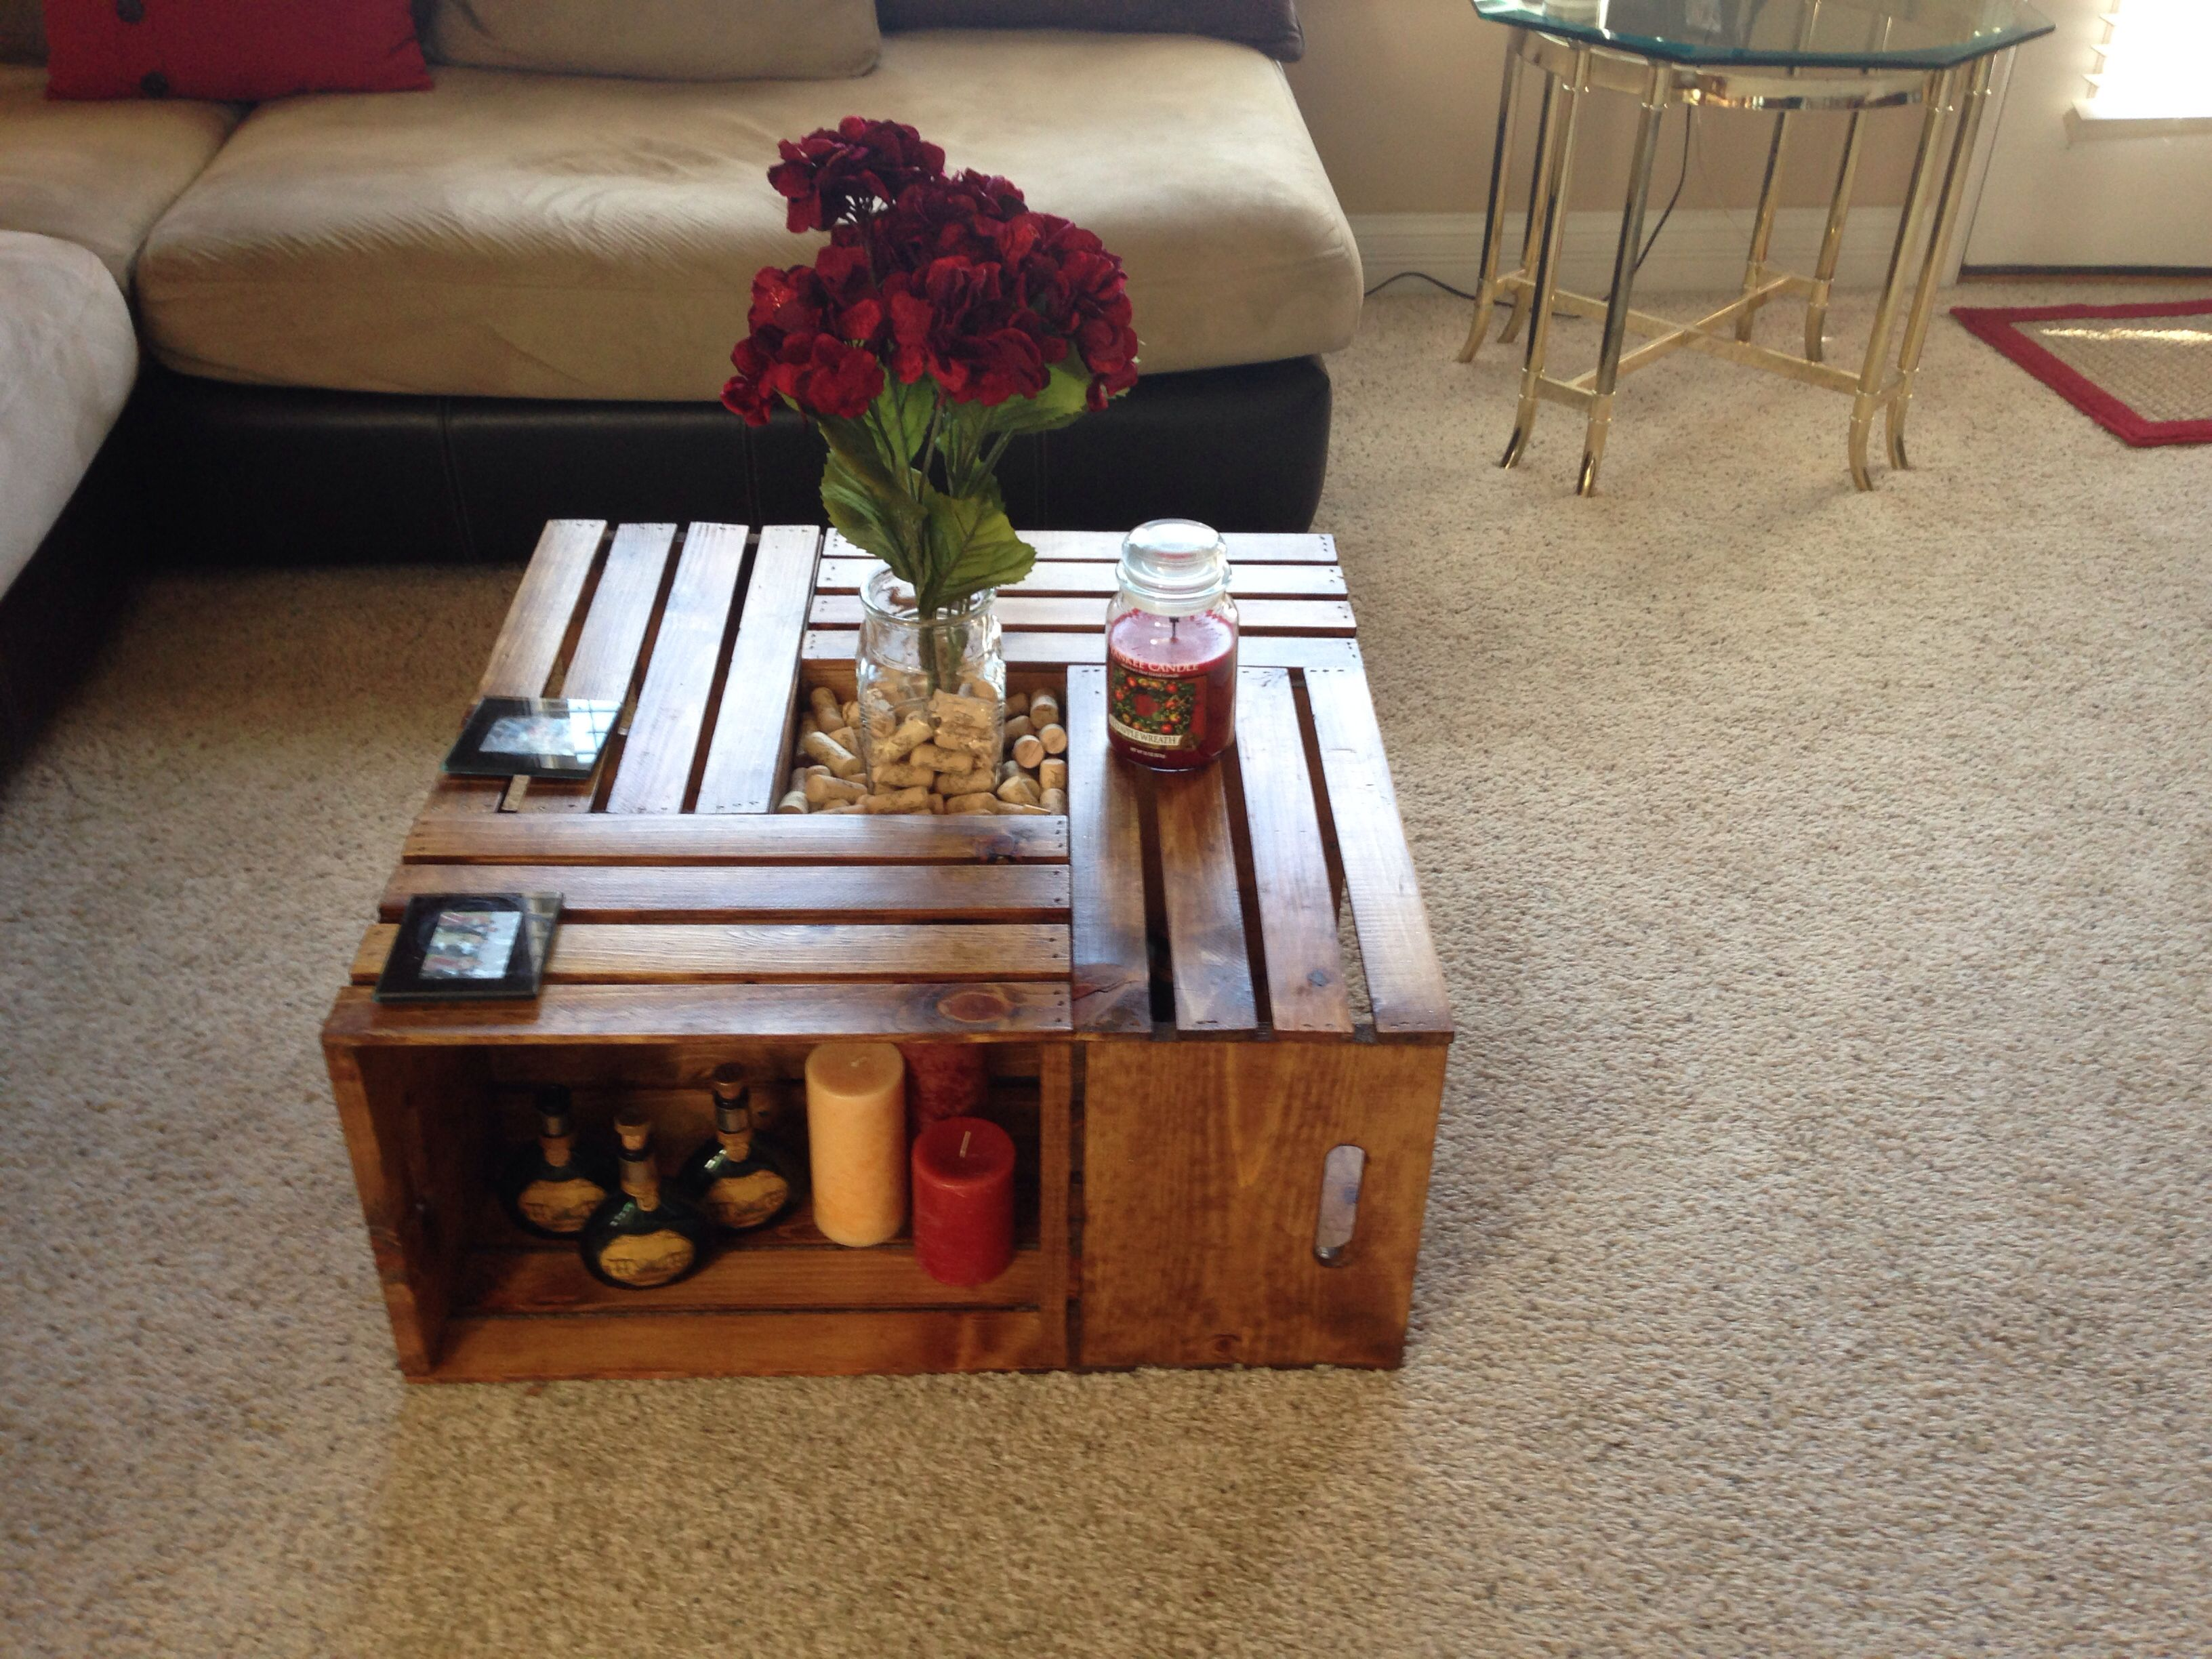 Crate table by Michael Crates came from michaels craft store If